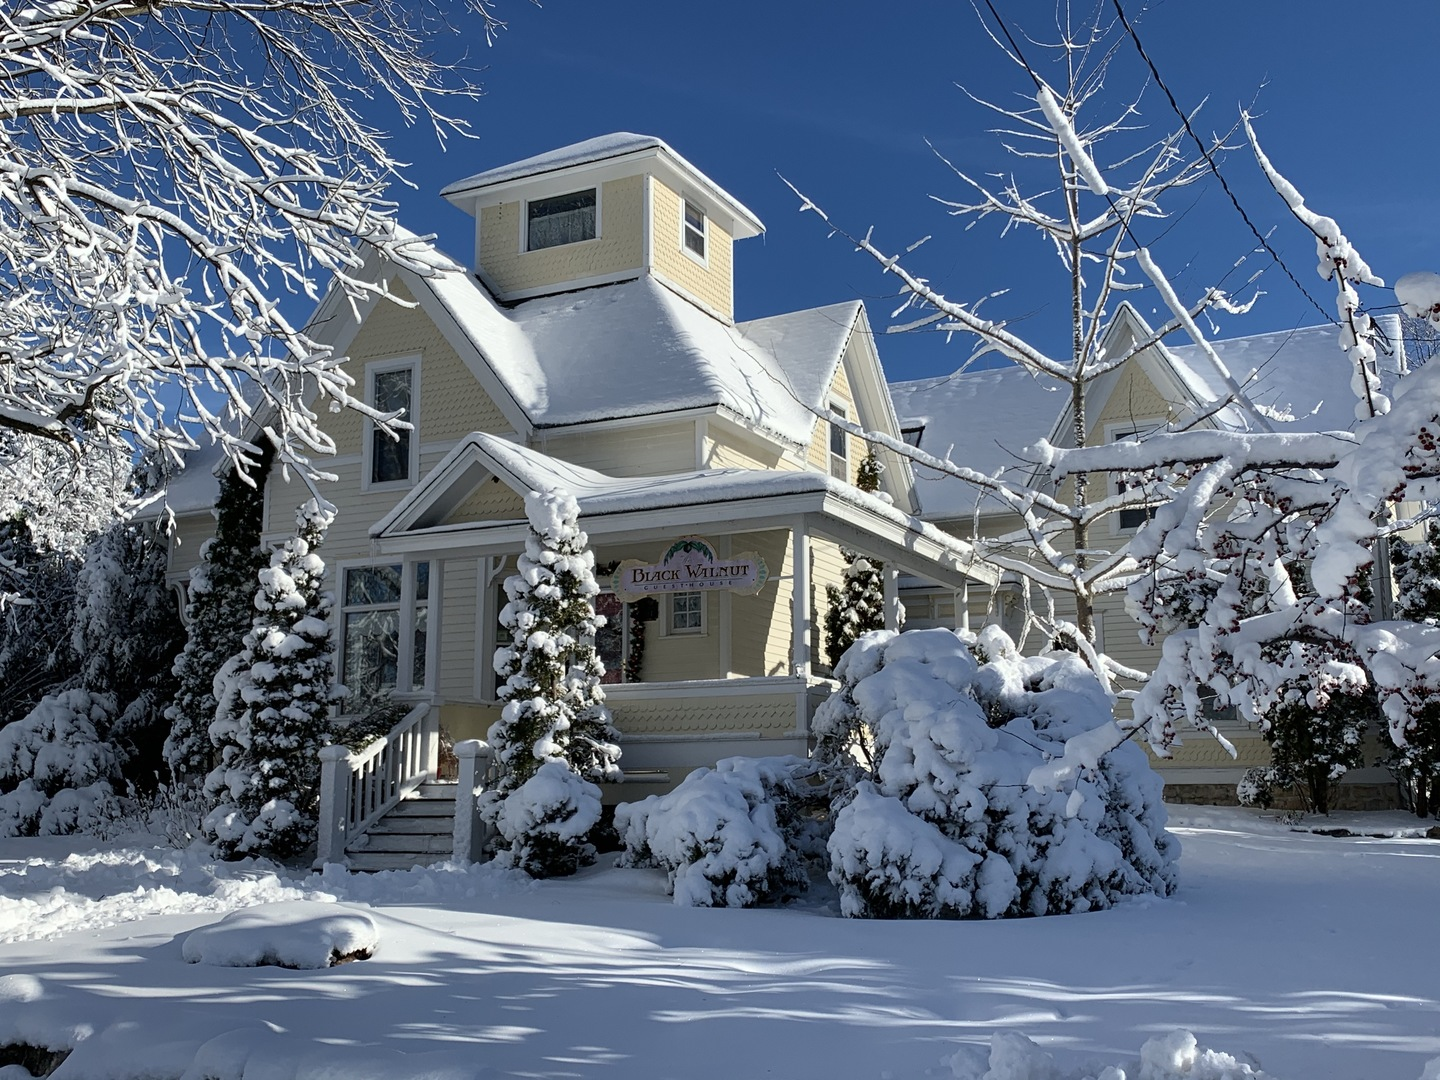 A house covered in snow at The Black Walnut Guest House Bed and Breakfast.